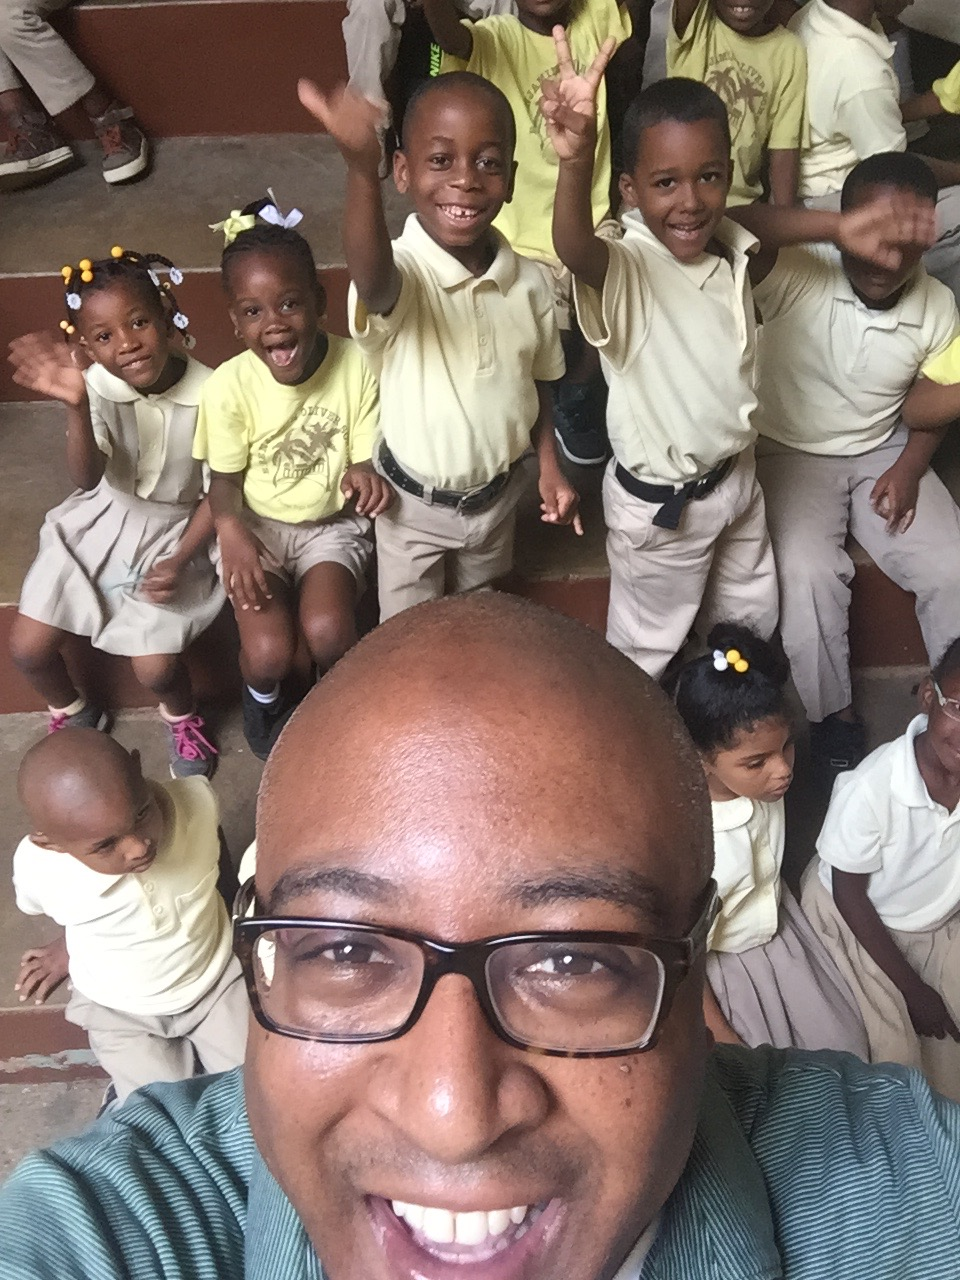 With students in St. Croix, Virgin Islands